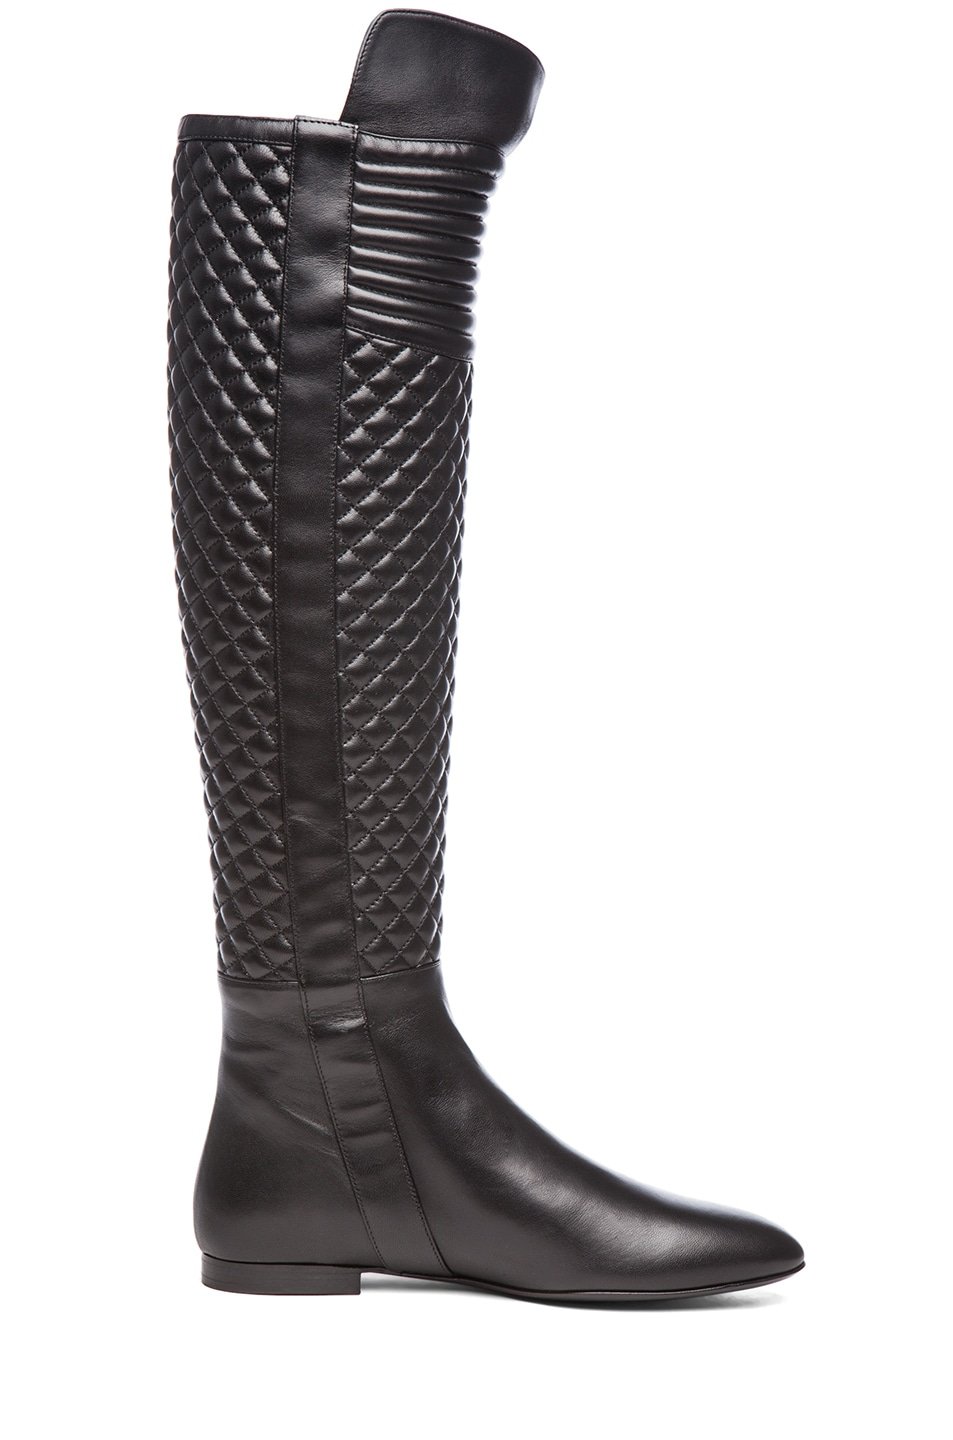 Image 5 of Brian Atwood Ares Nappa Leather Boot in Black